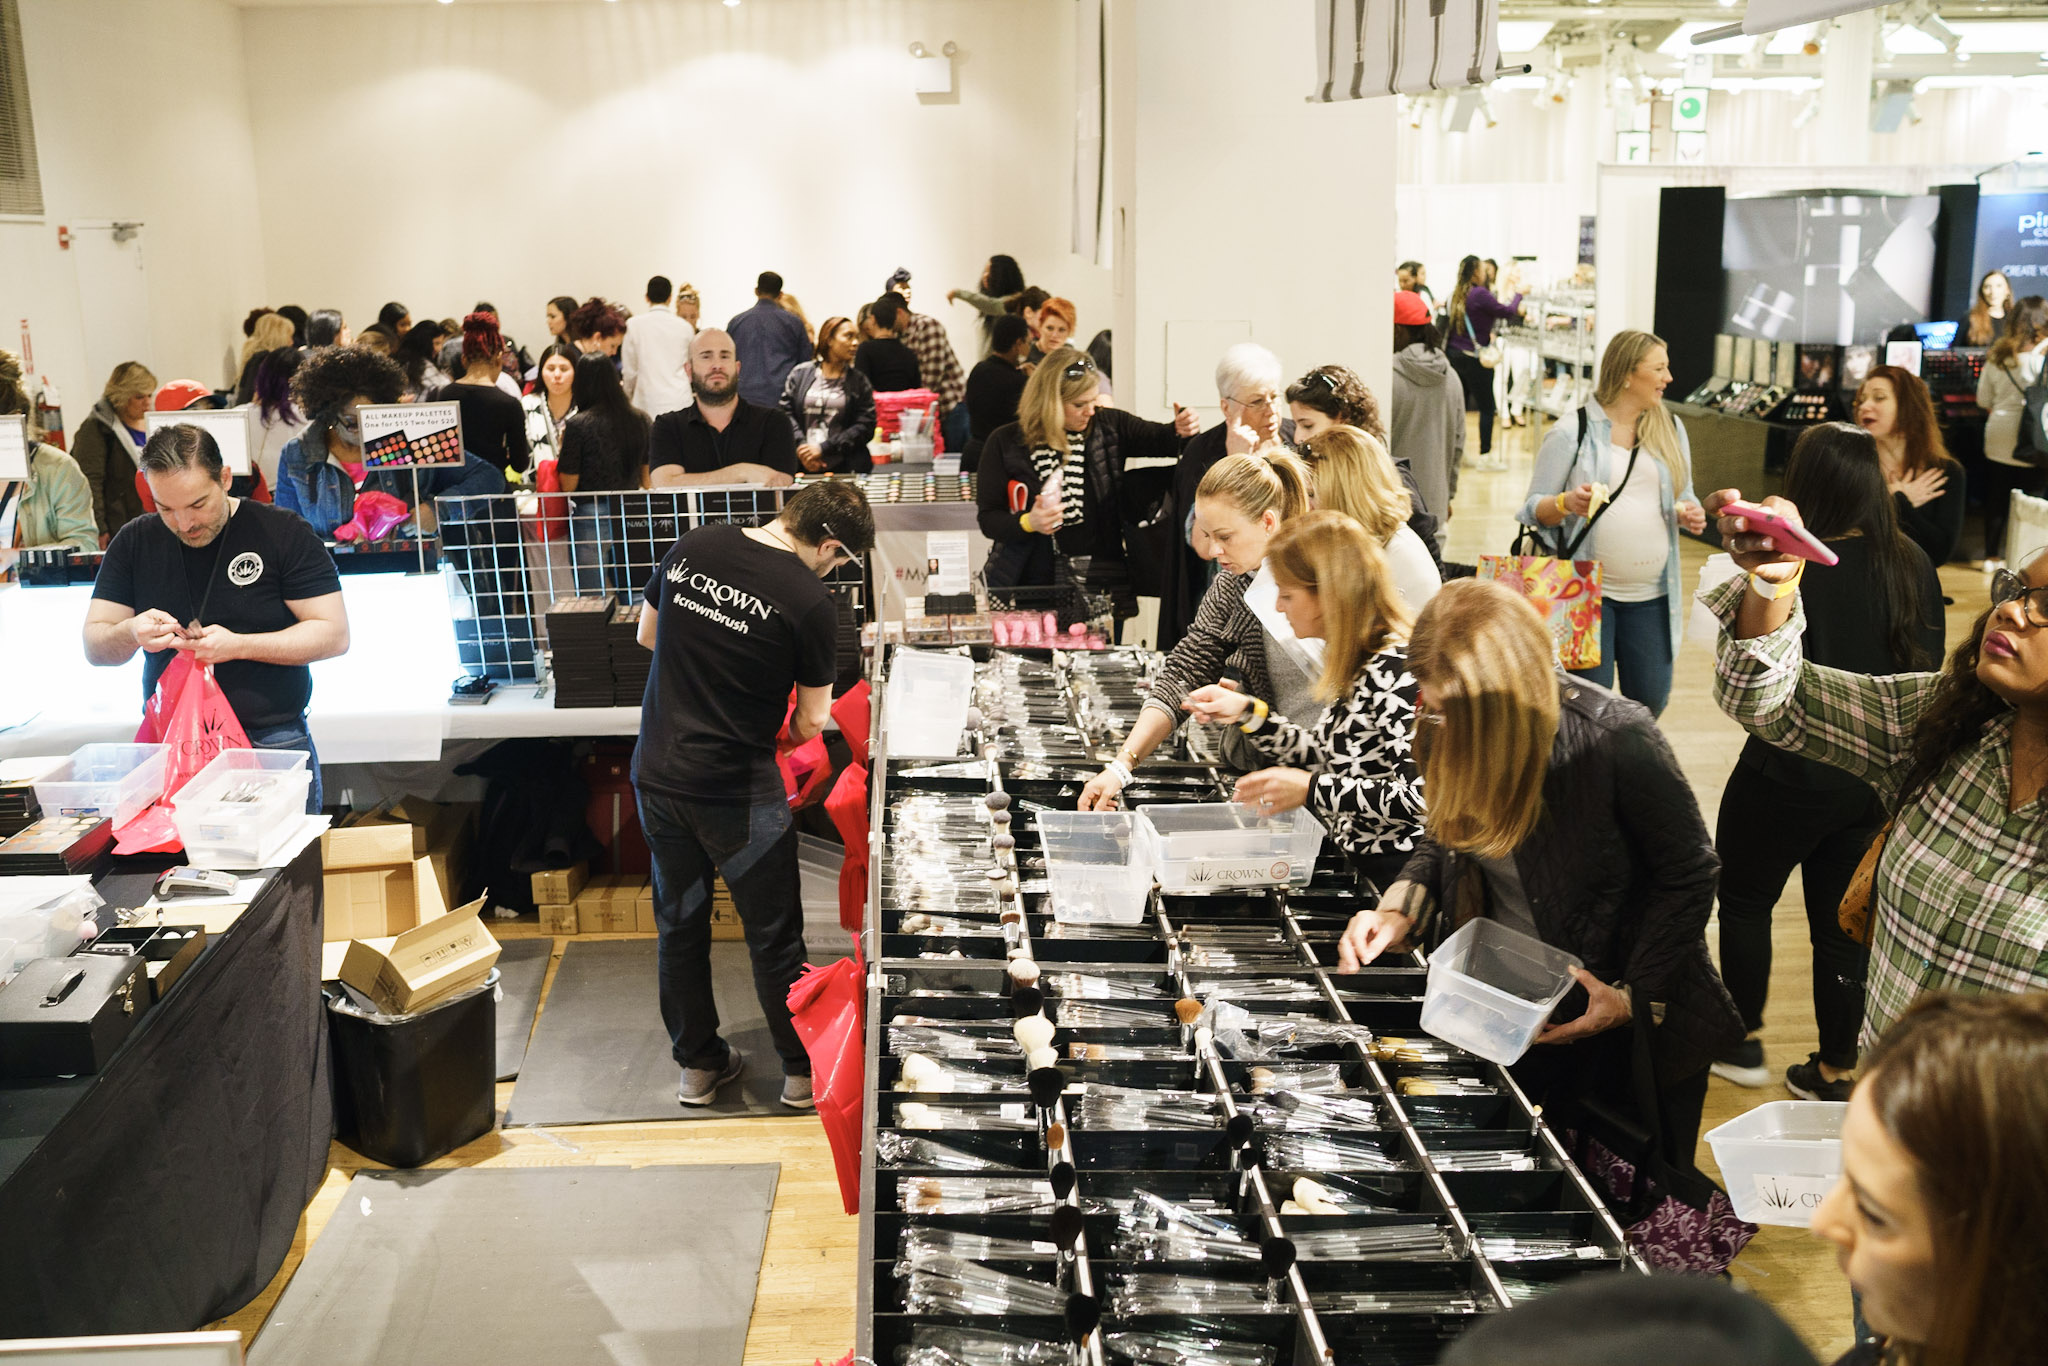 The Makeup Show is coming to NYC May 5-6, 2019